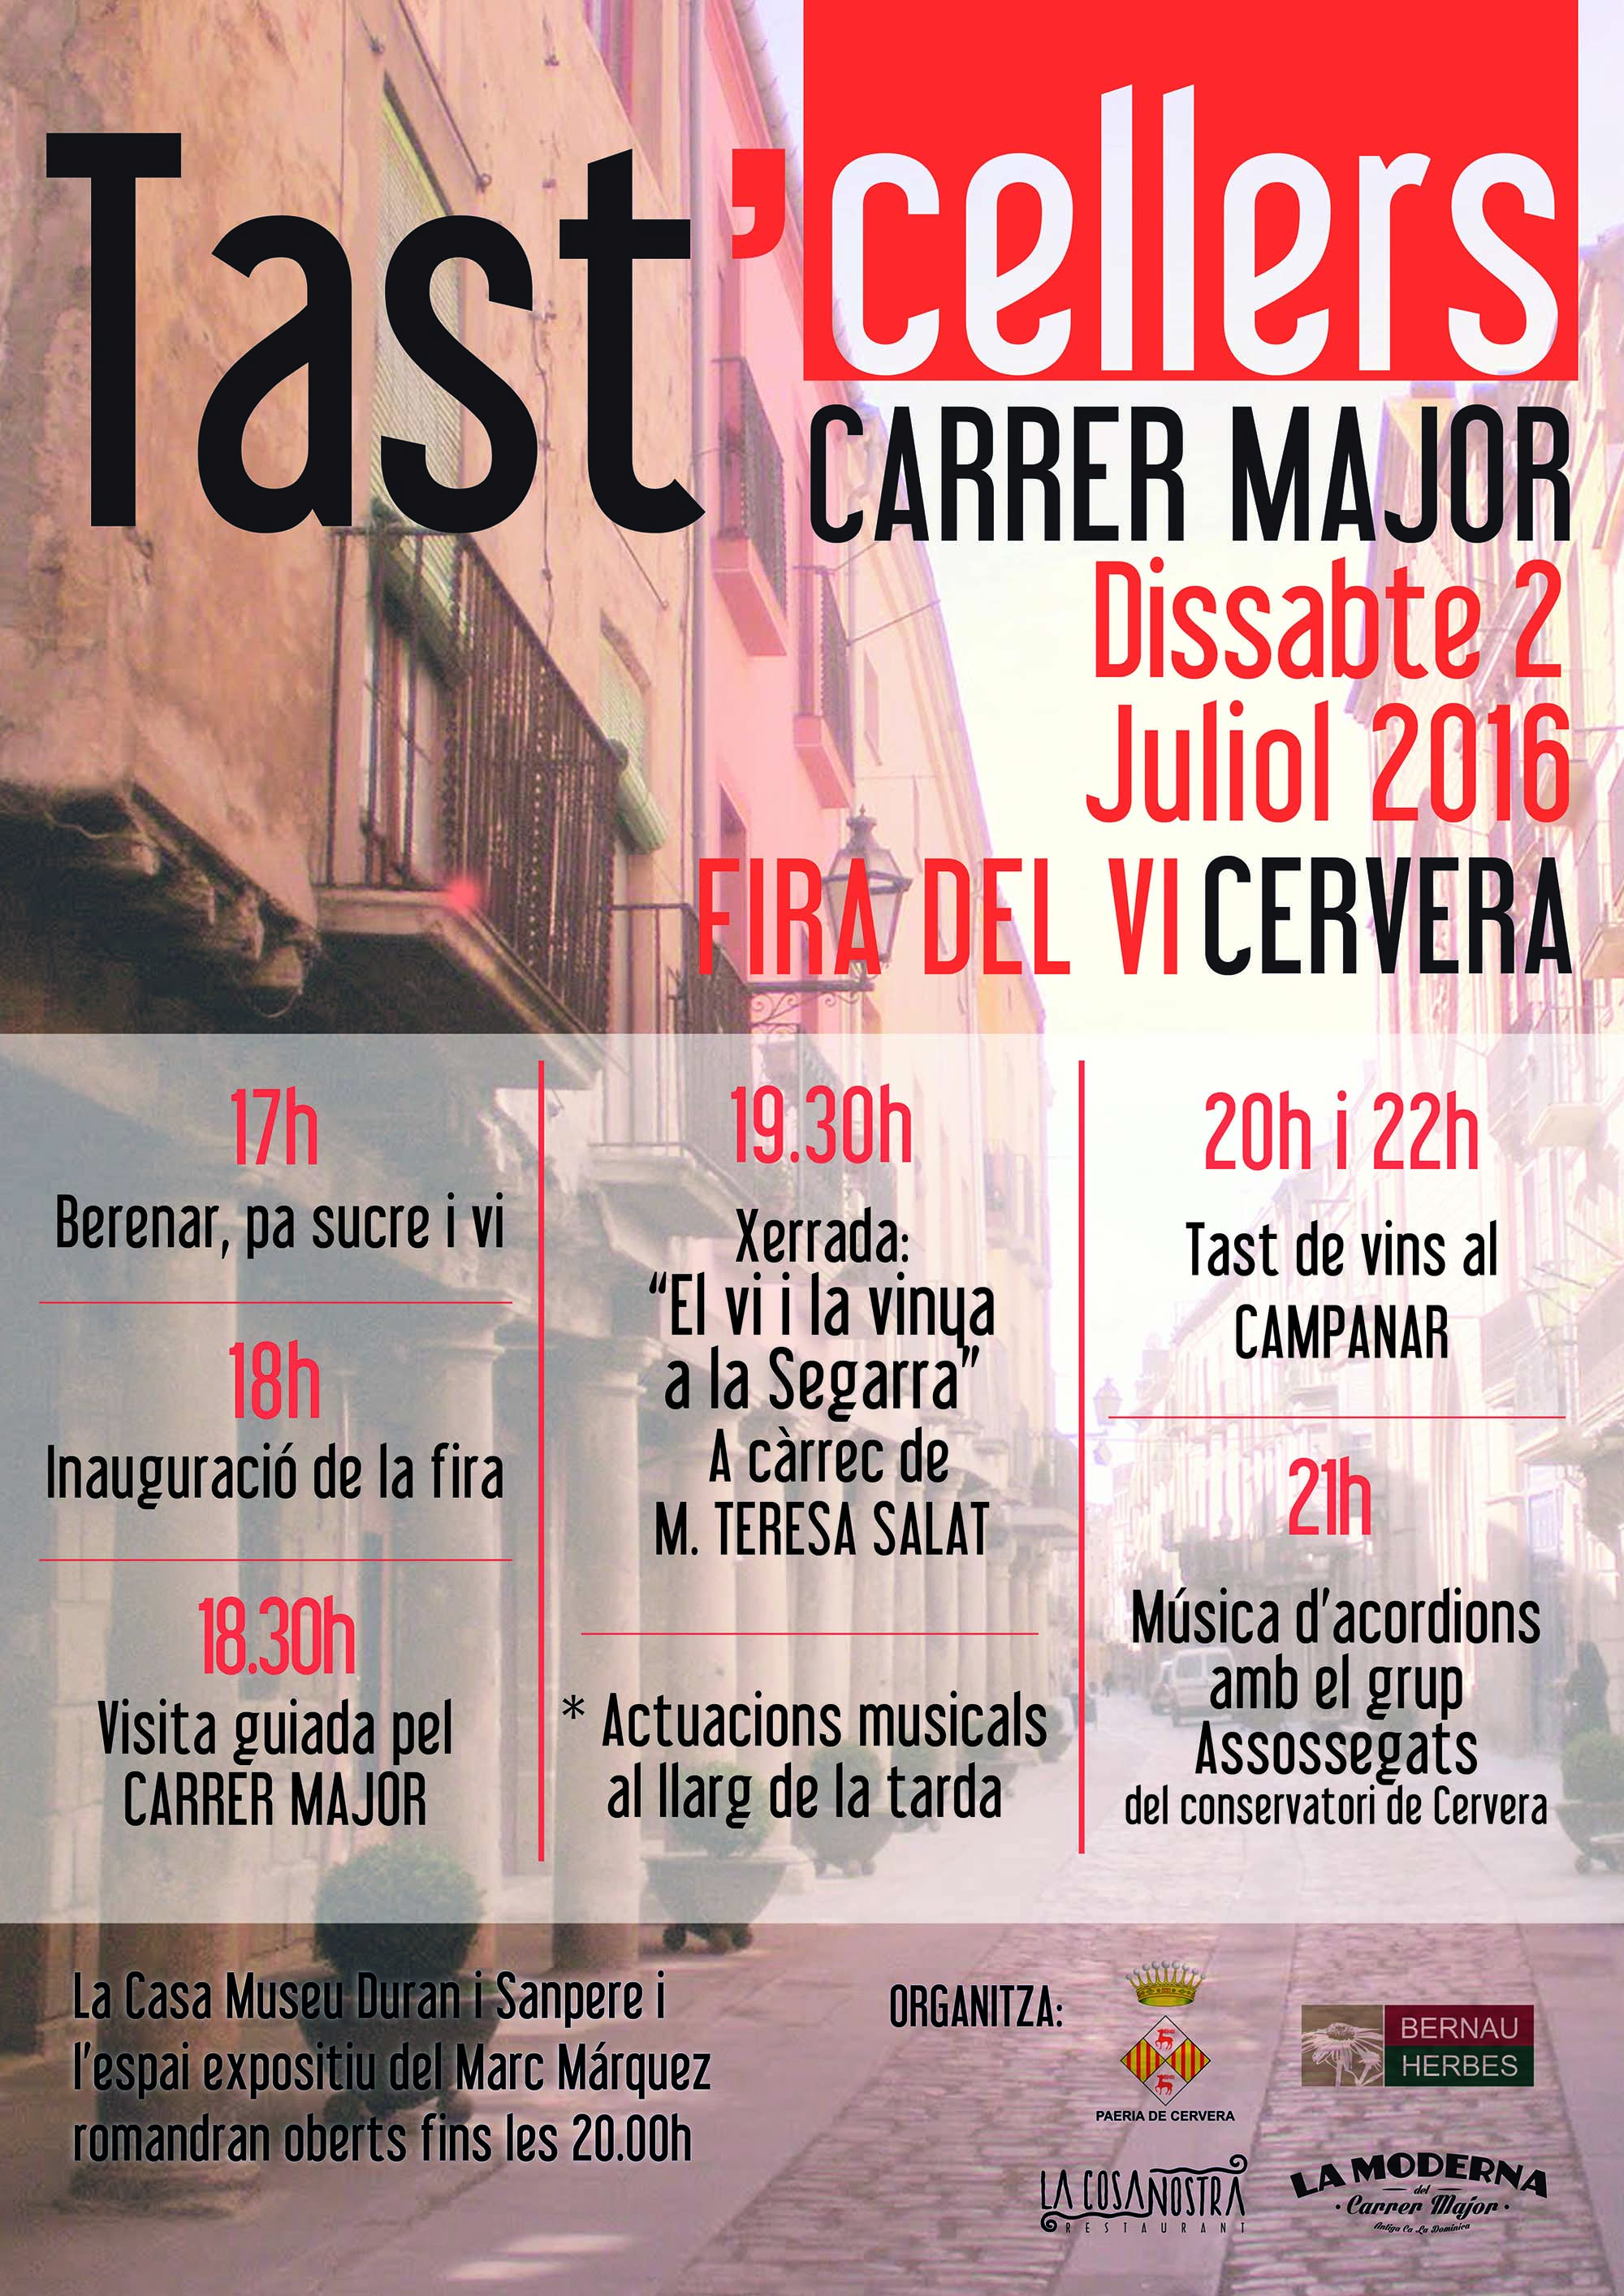 cartell TastCellers